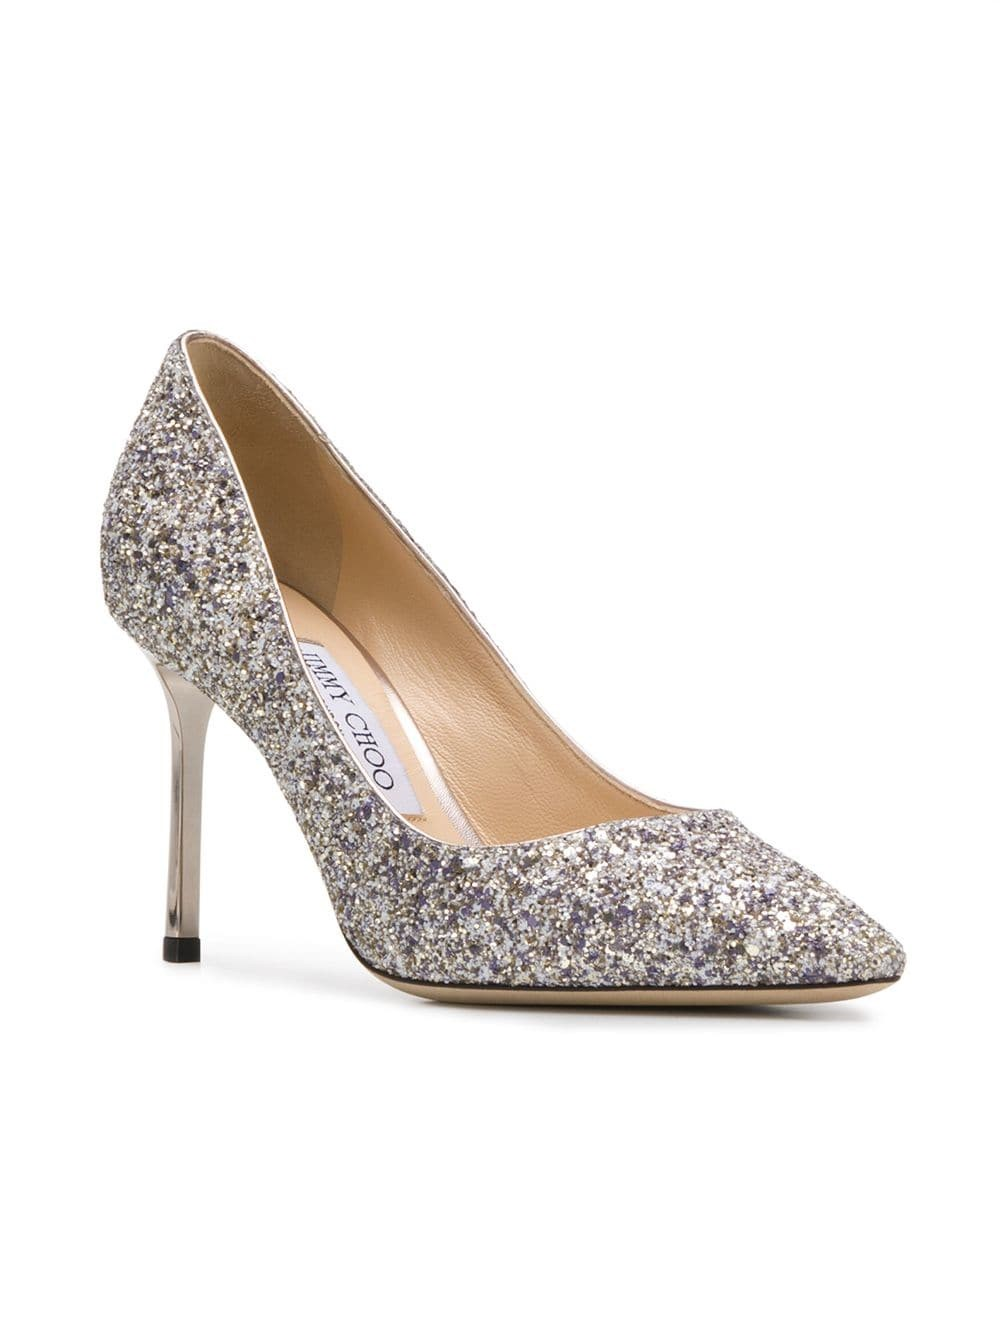 0cbeb087c1fa jimmy choo GLITTER PUMPS available on montiboutique.com - 26881